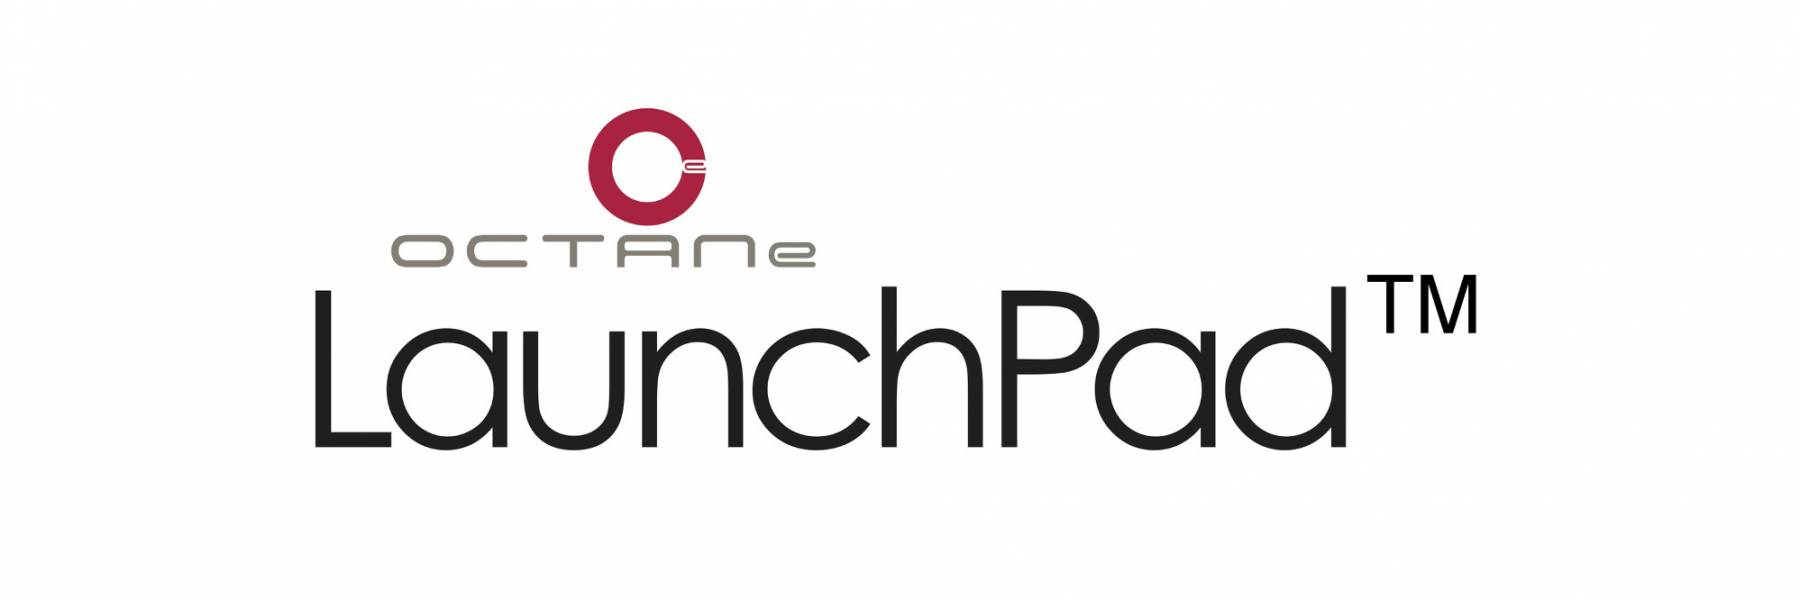 See what's new from LaunchPad